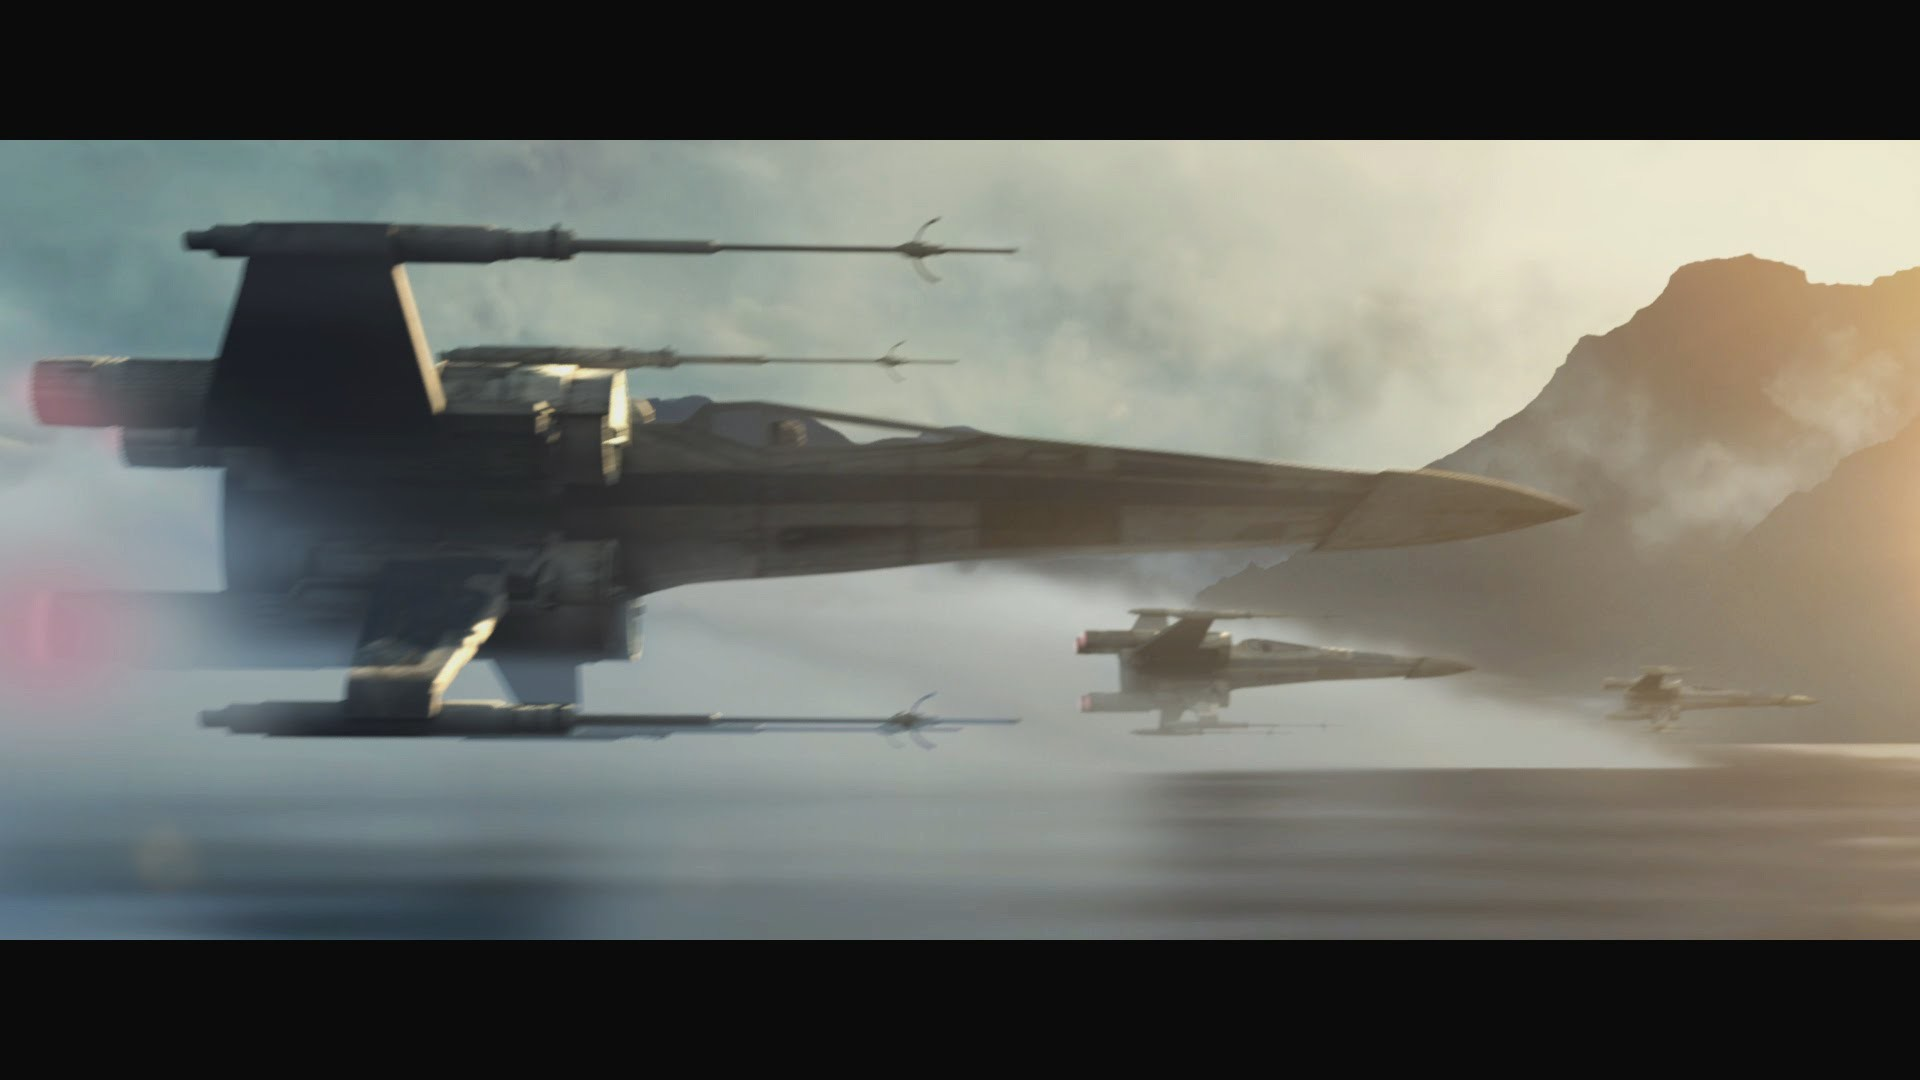 1920x1080 The Force Awakens Teaser Scene Remake / VFX Breakdown (2015) [HD] - YouTube